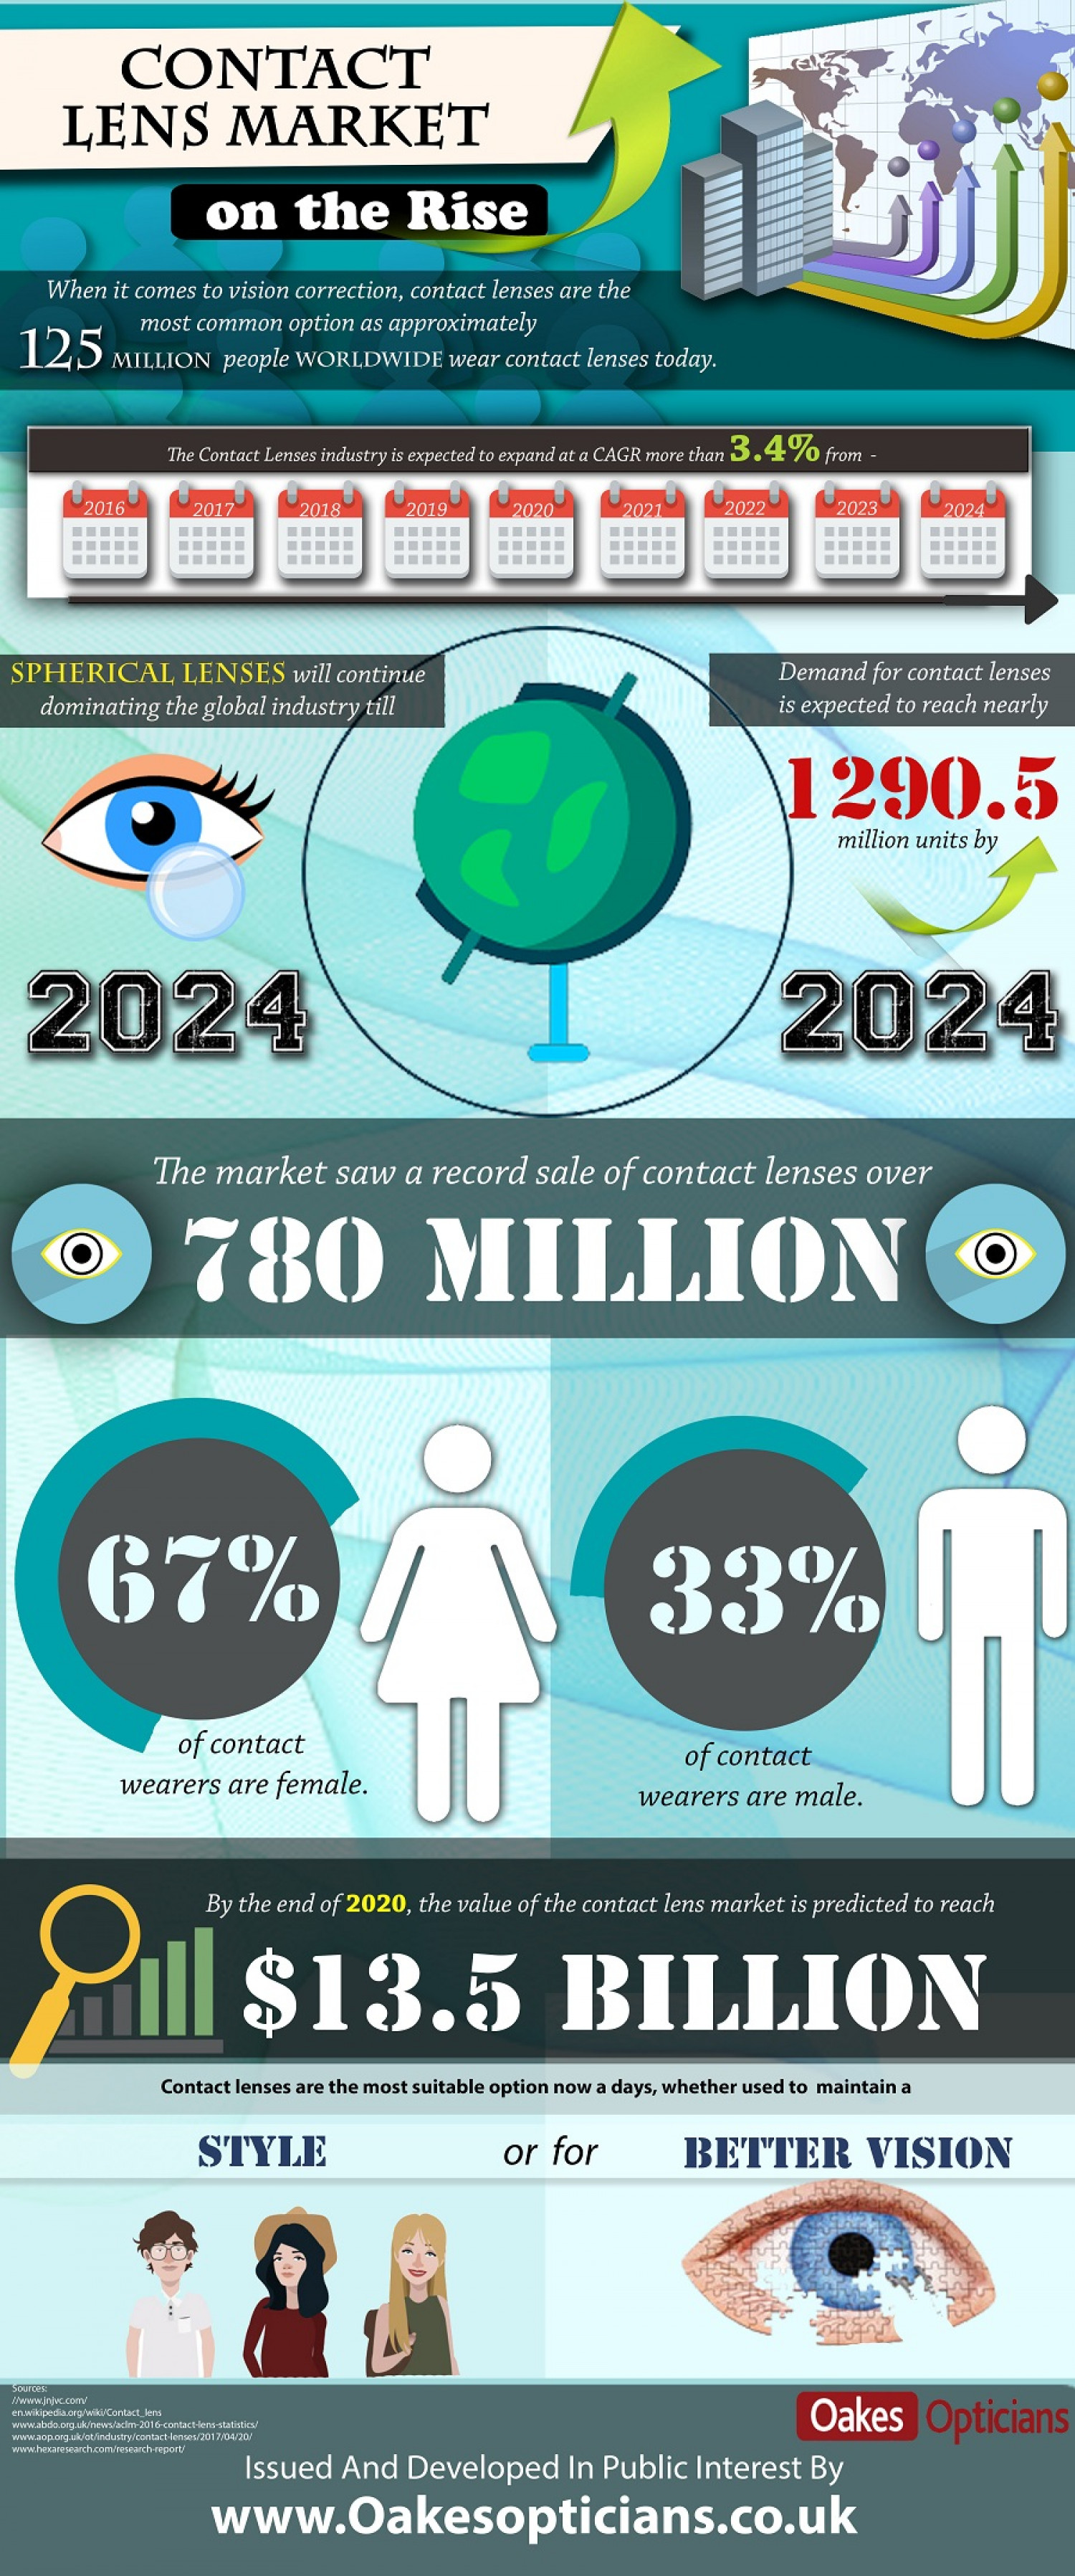 Contact Lens Market on the Rise Infographic